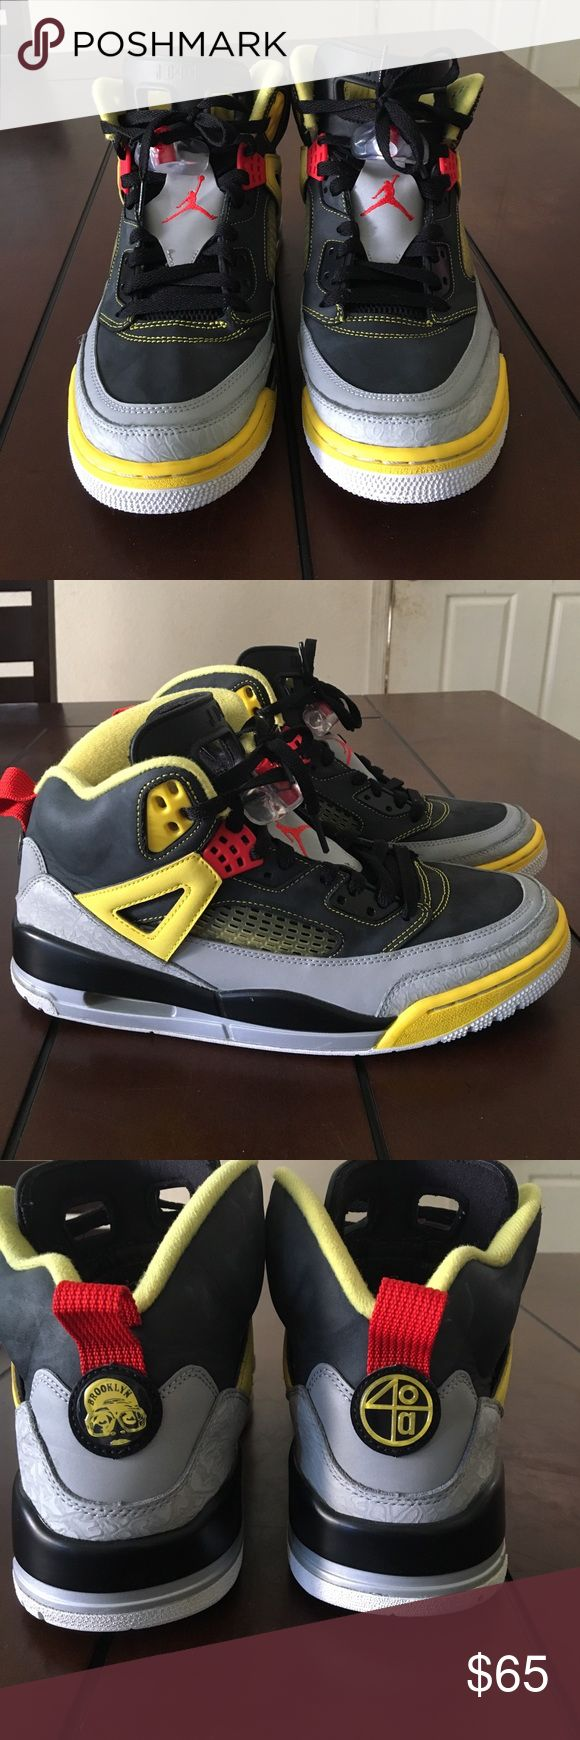 Air Jordan Spizike Brooklyn Worn a hand full of times,  overall good condition. Includes original box Jordan Shoes Sneakers